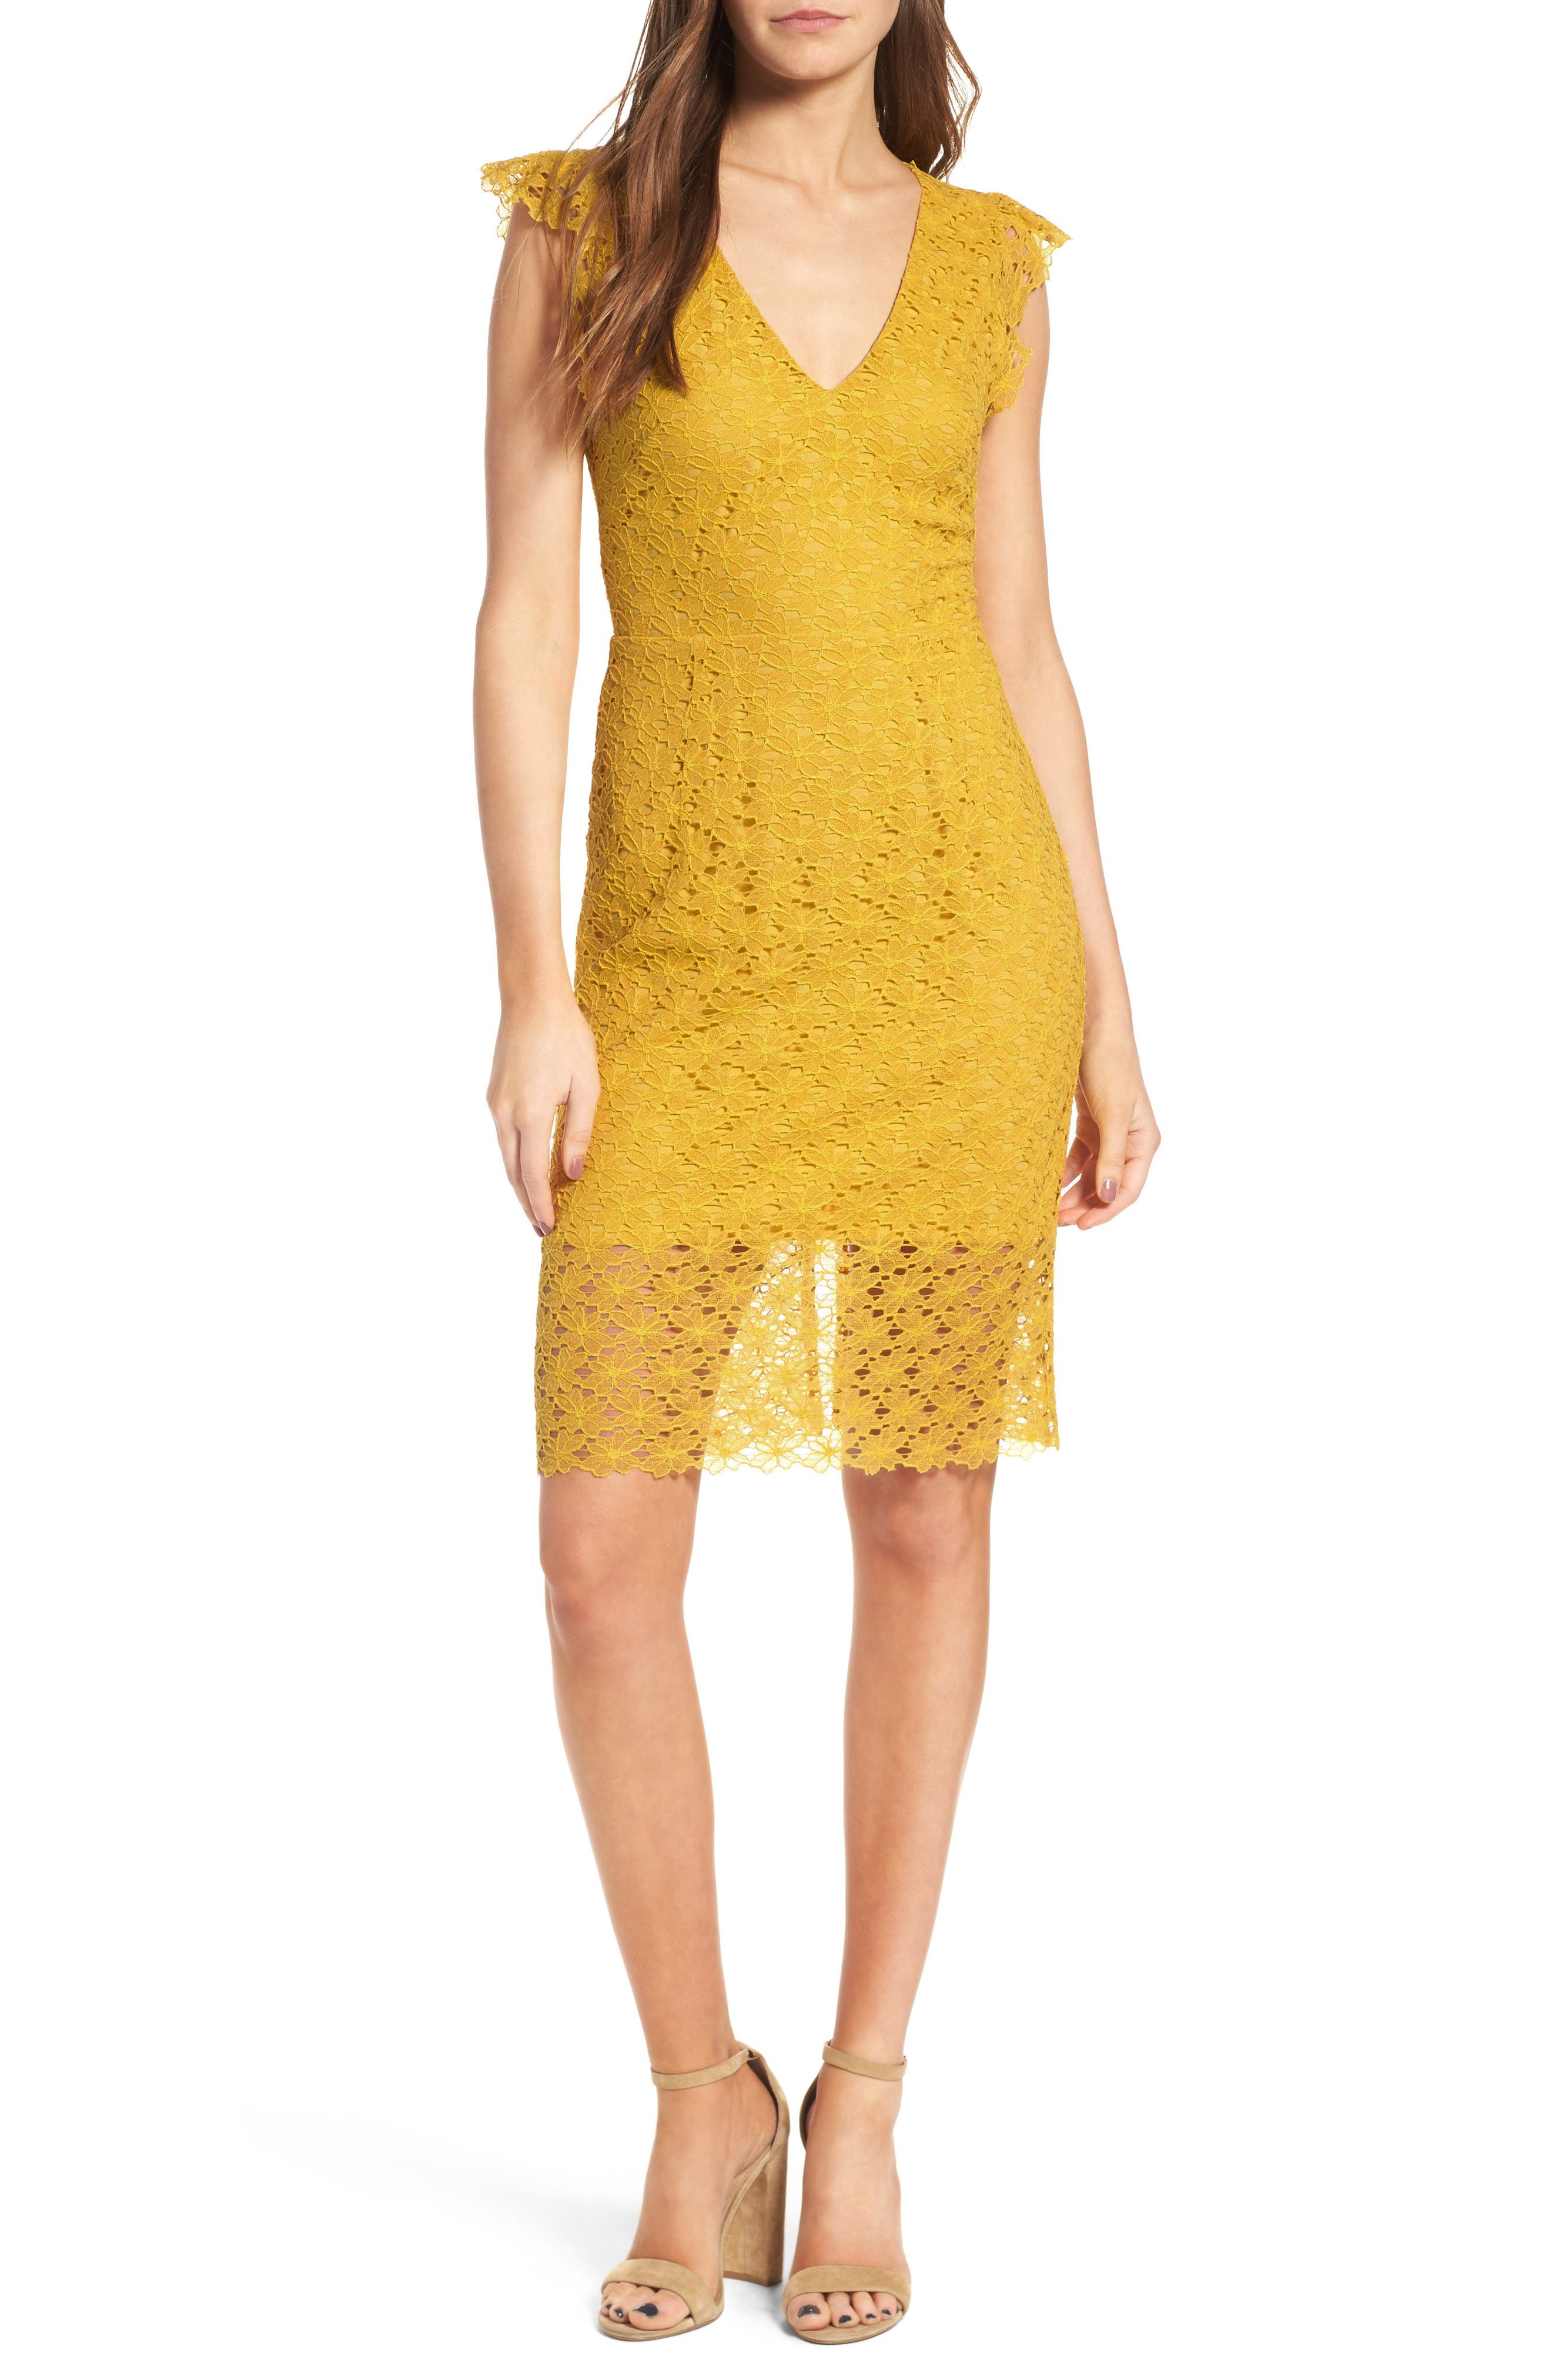 J.O.A. Lace Sheath Dress